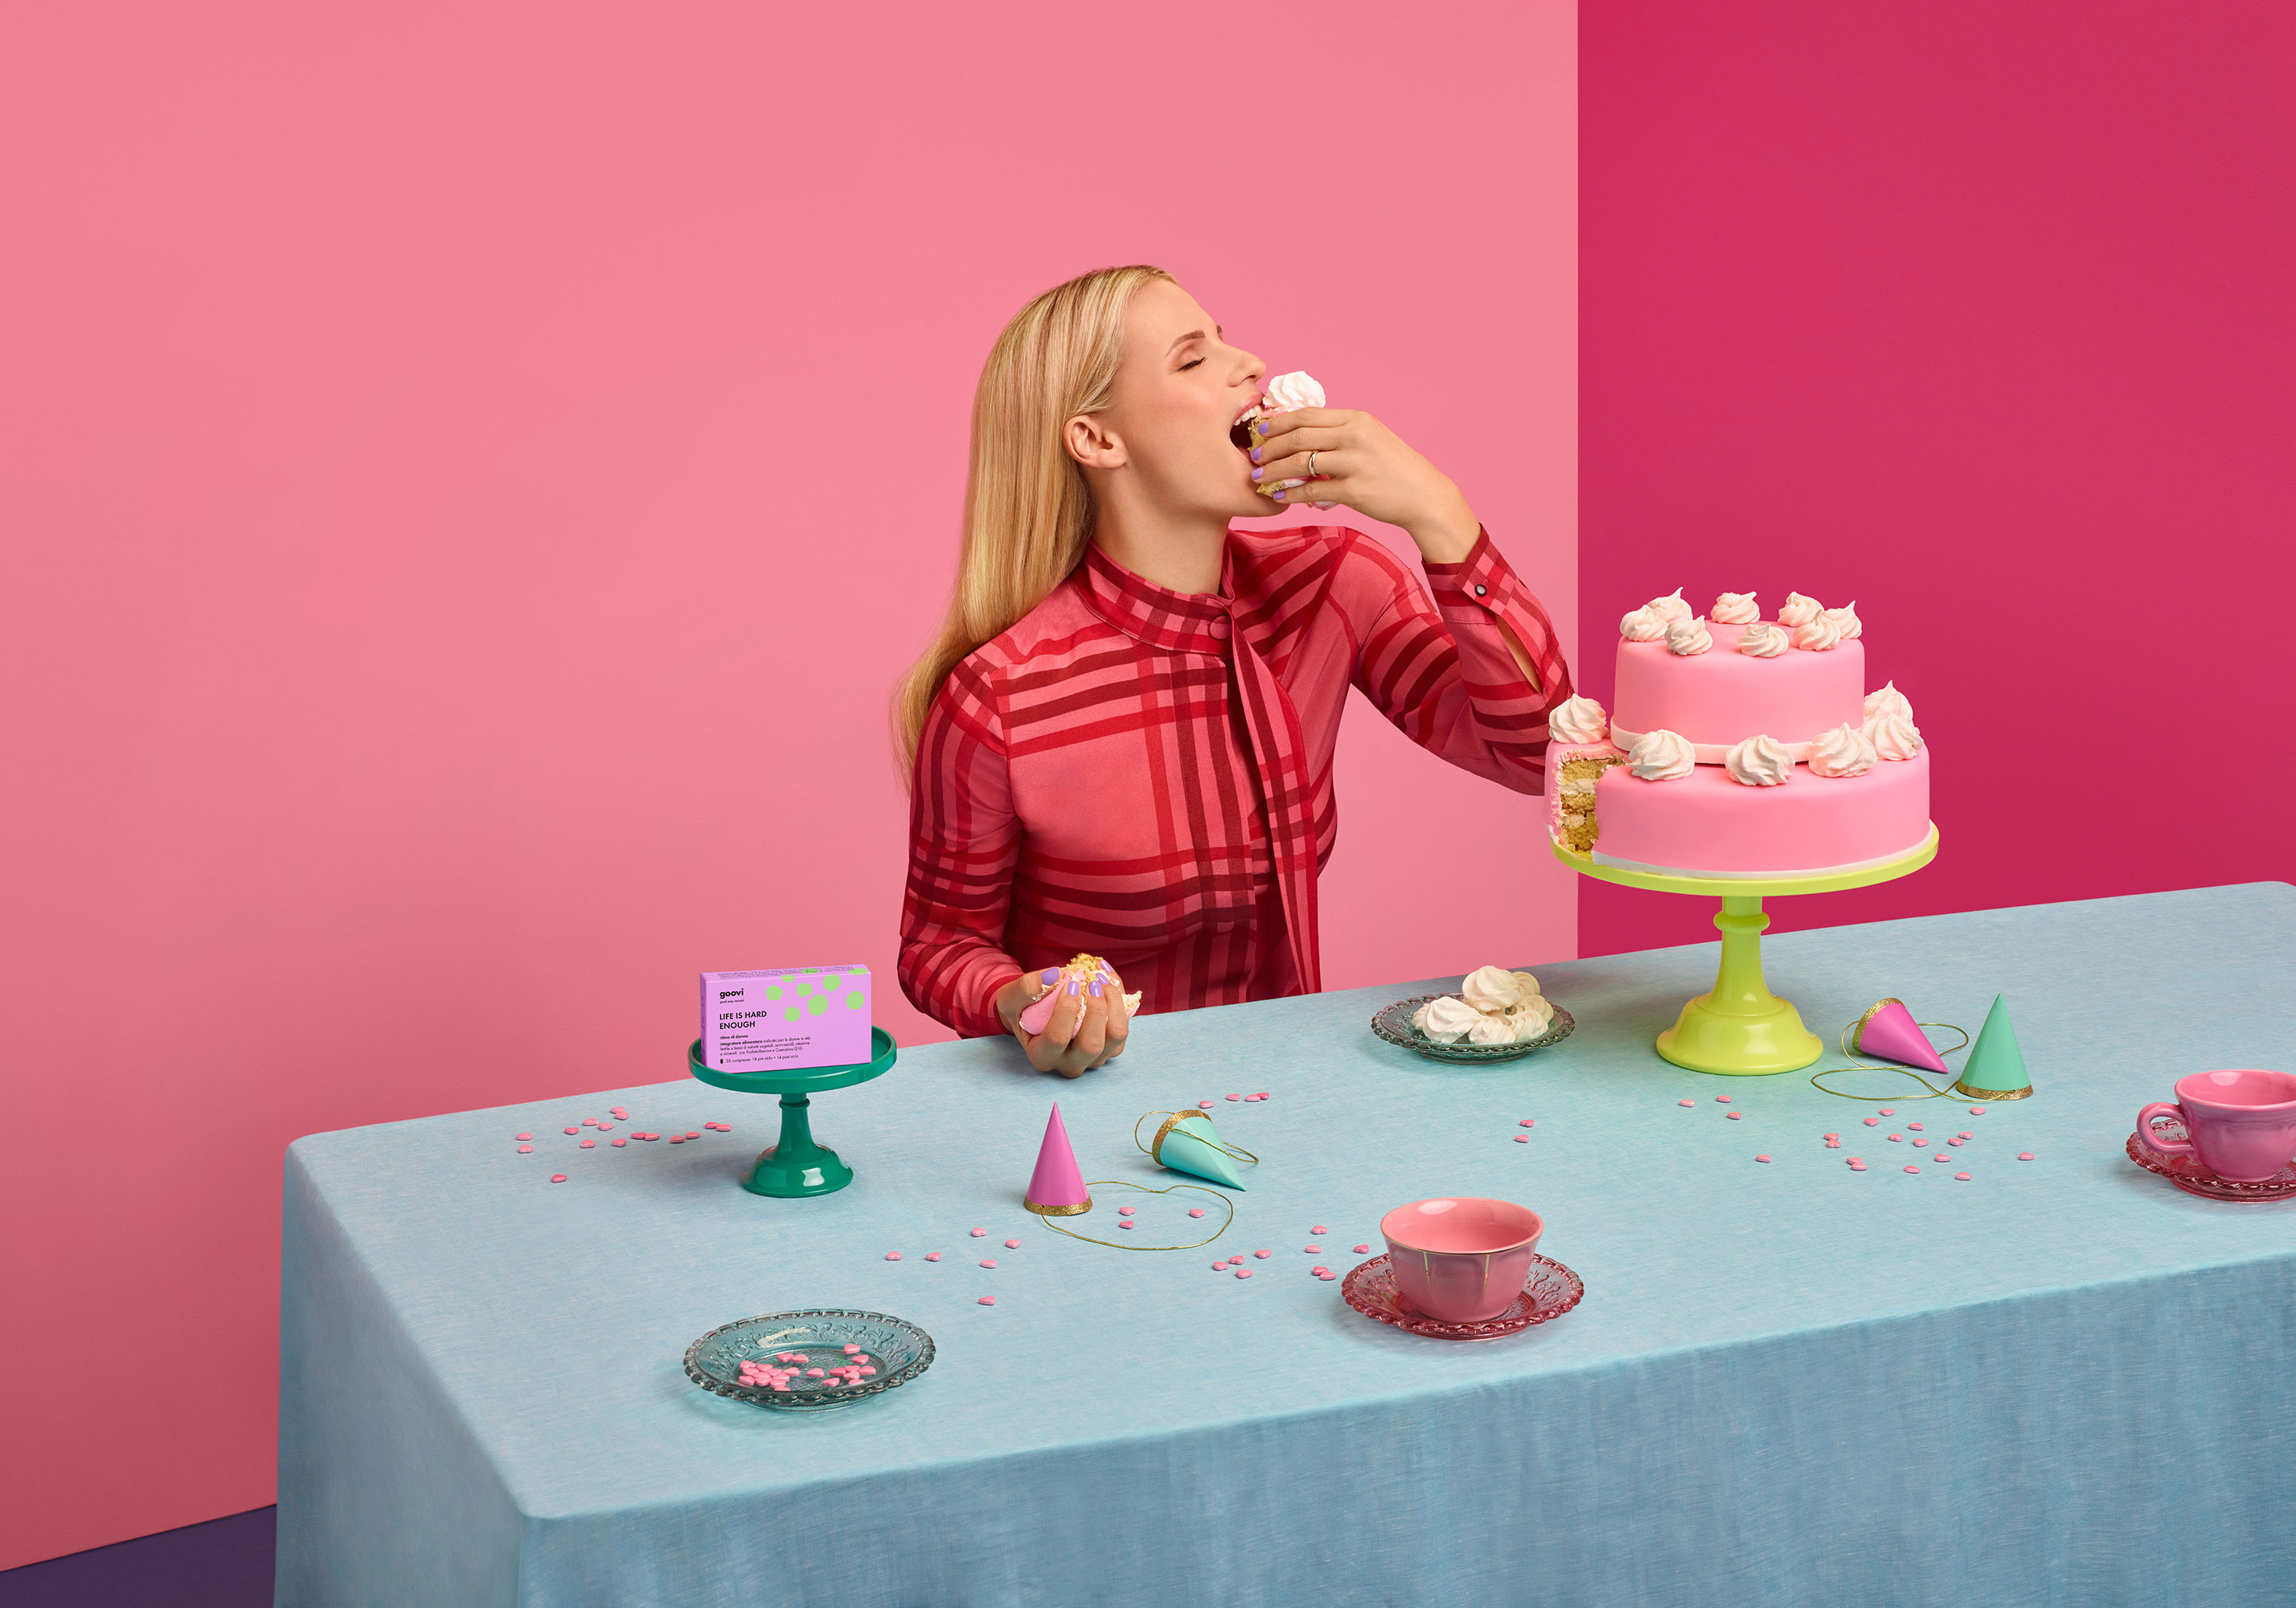 Goovi ADV 2018 | Aleksandra Kingo | Goovi | Elle Decor | Stephanie Kherlakian | Numerique Retouch Photo Retouching Studio